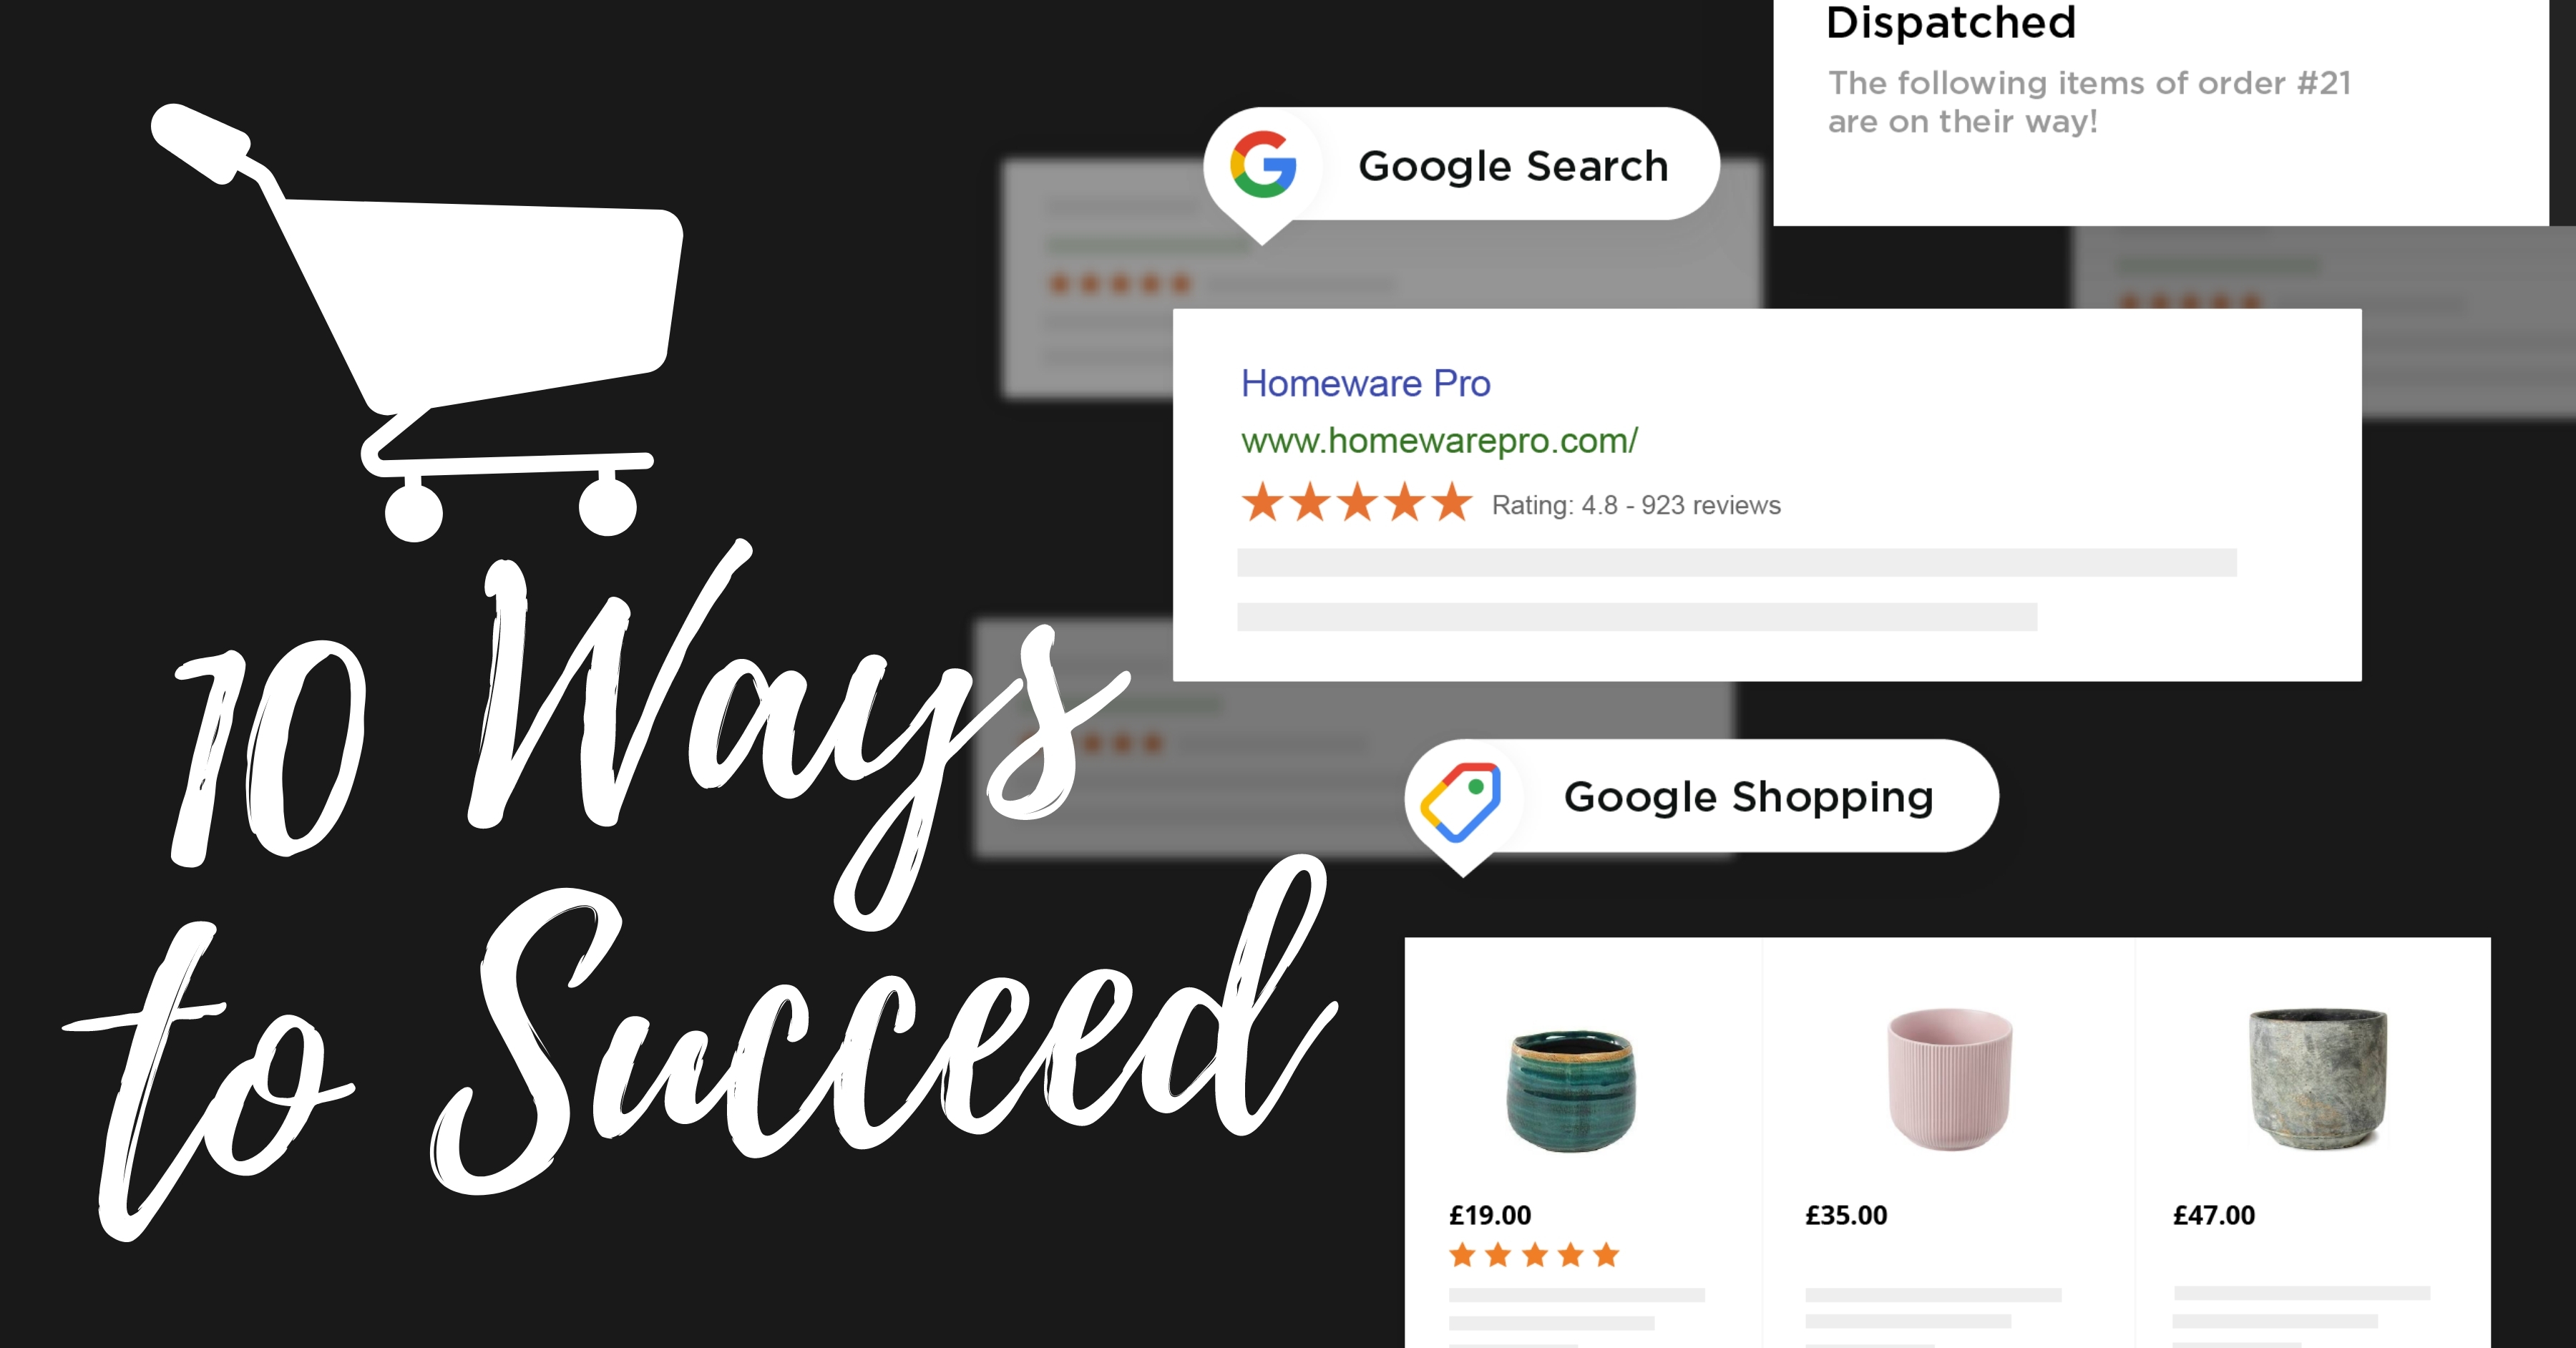 10 ways to Succeed at Google Shopping